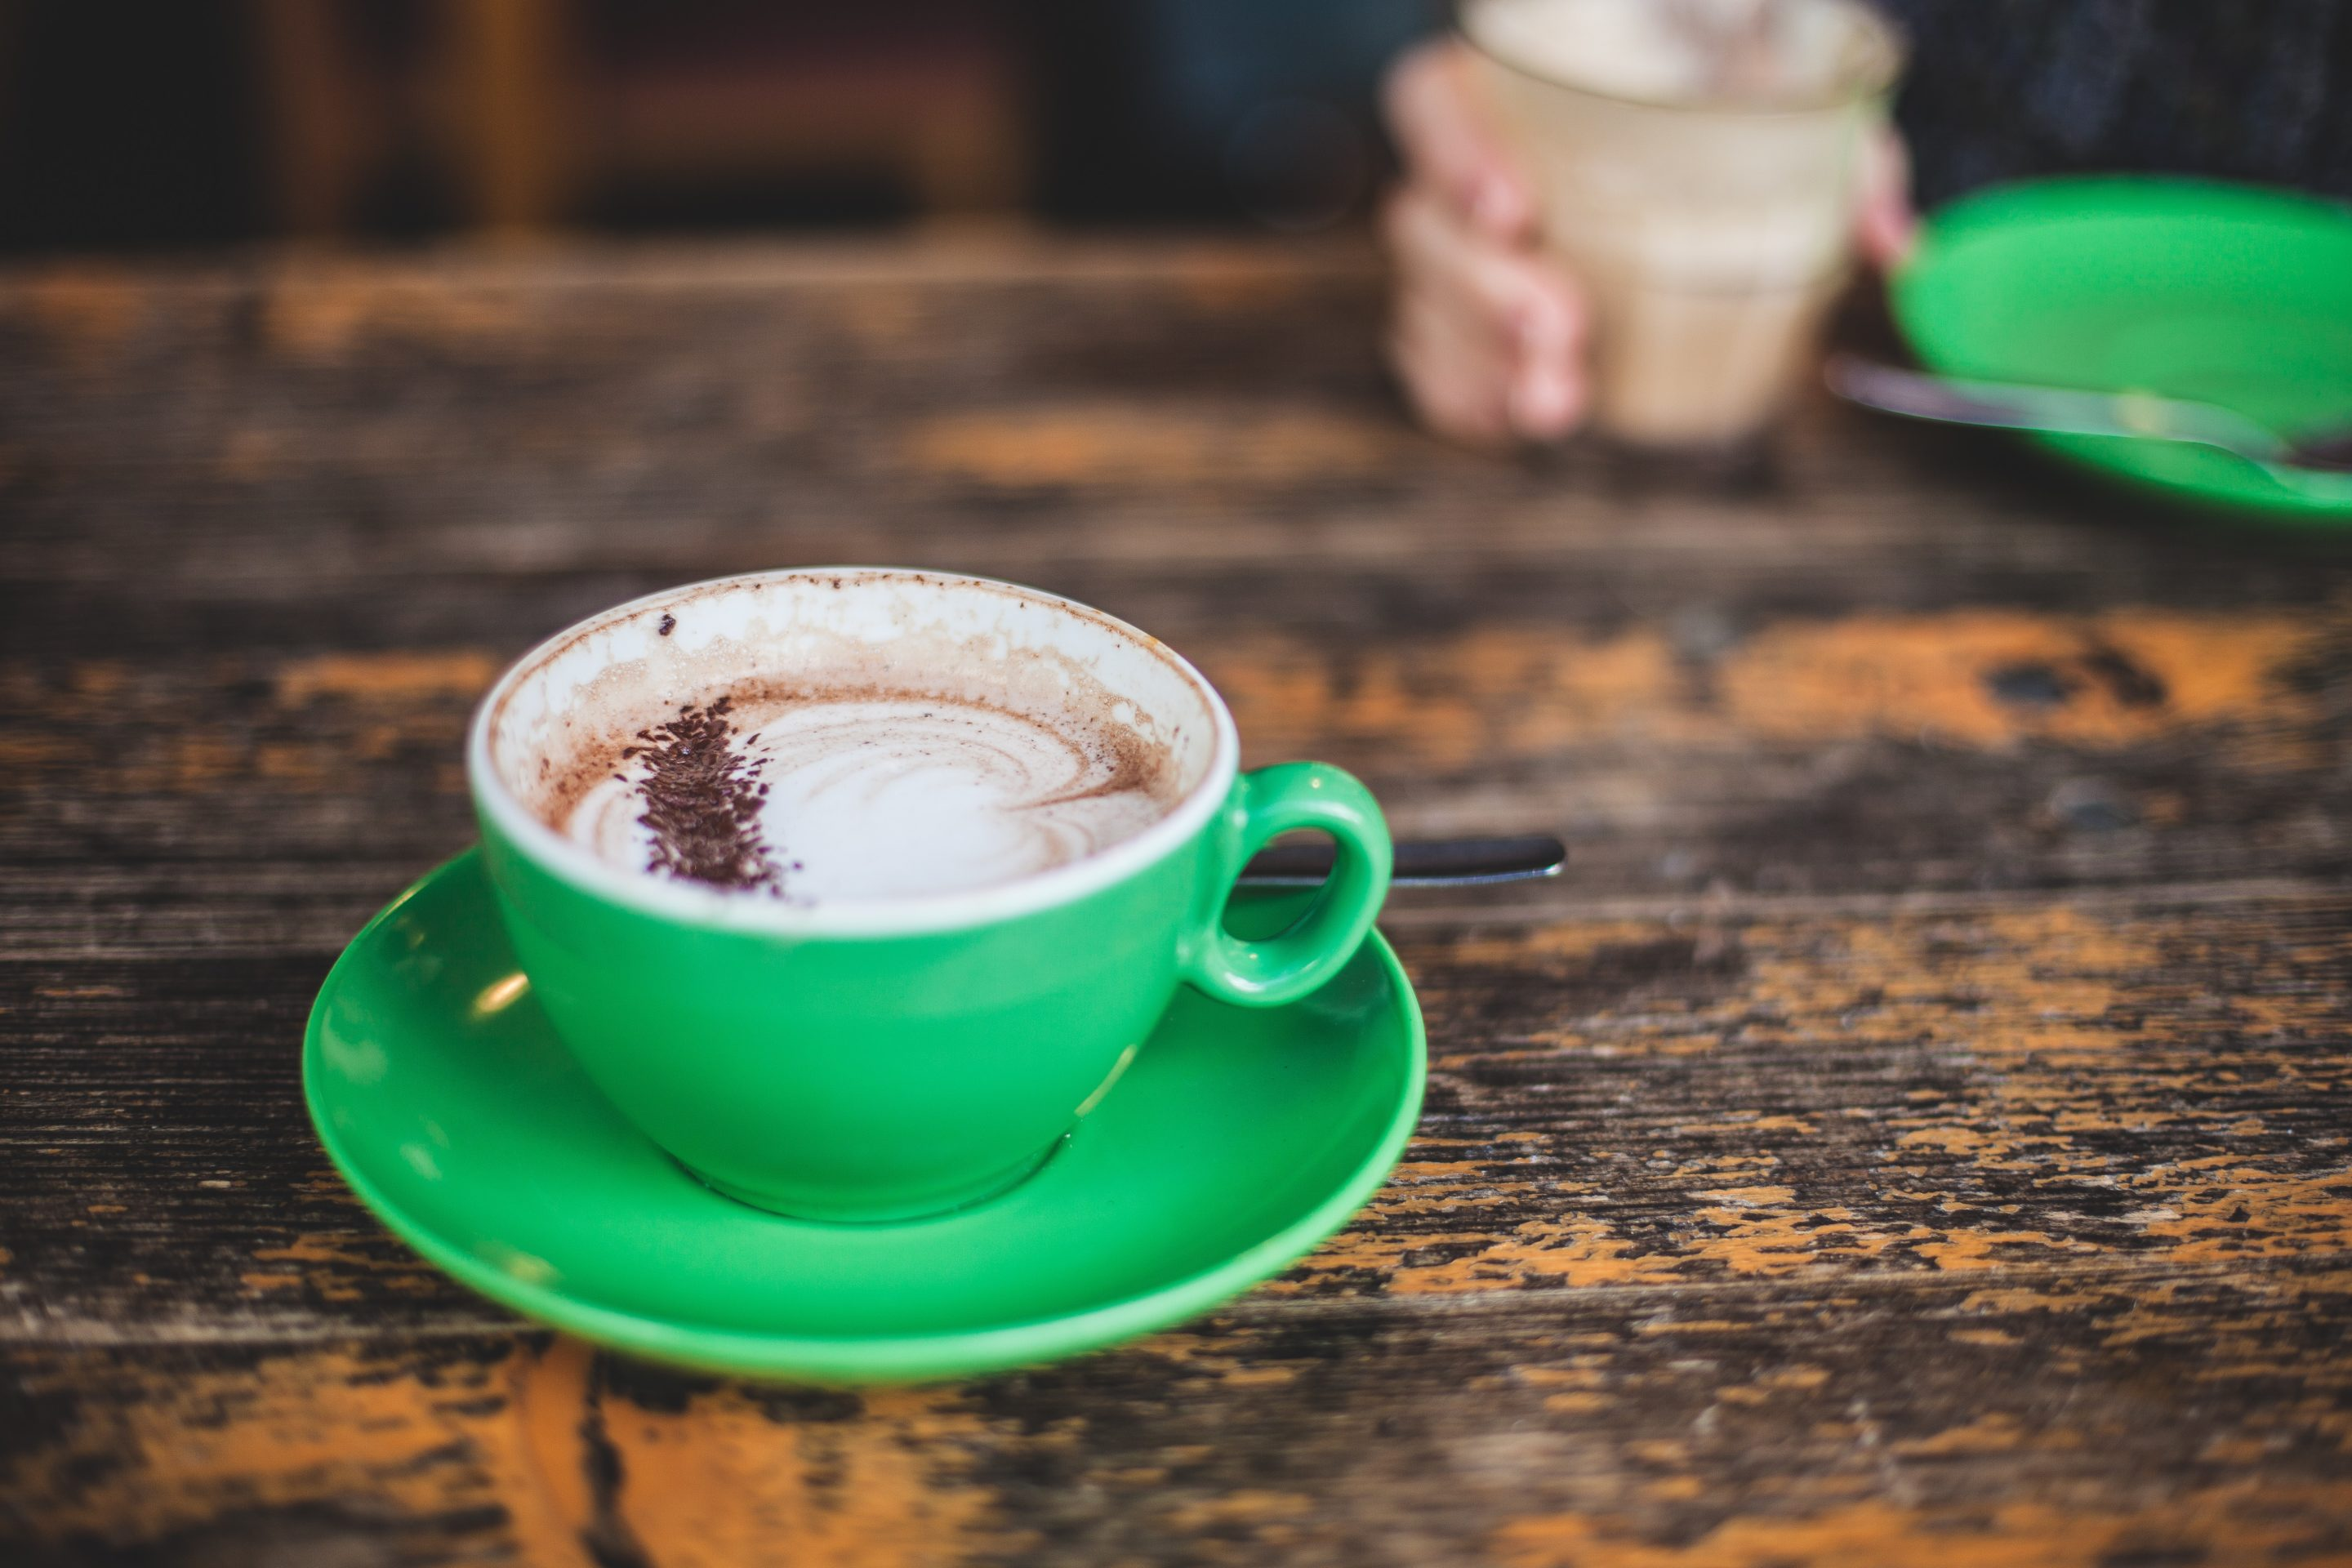 Maximum Taste, Minimum Calories: How Many Calories Are In Your Cup Of Coffee?